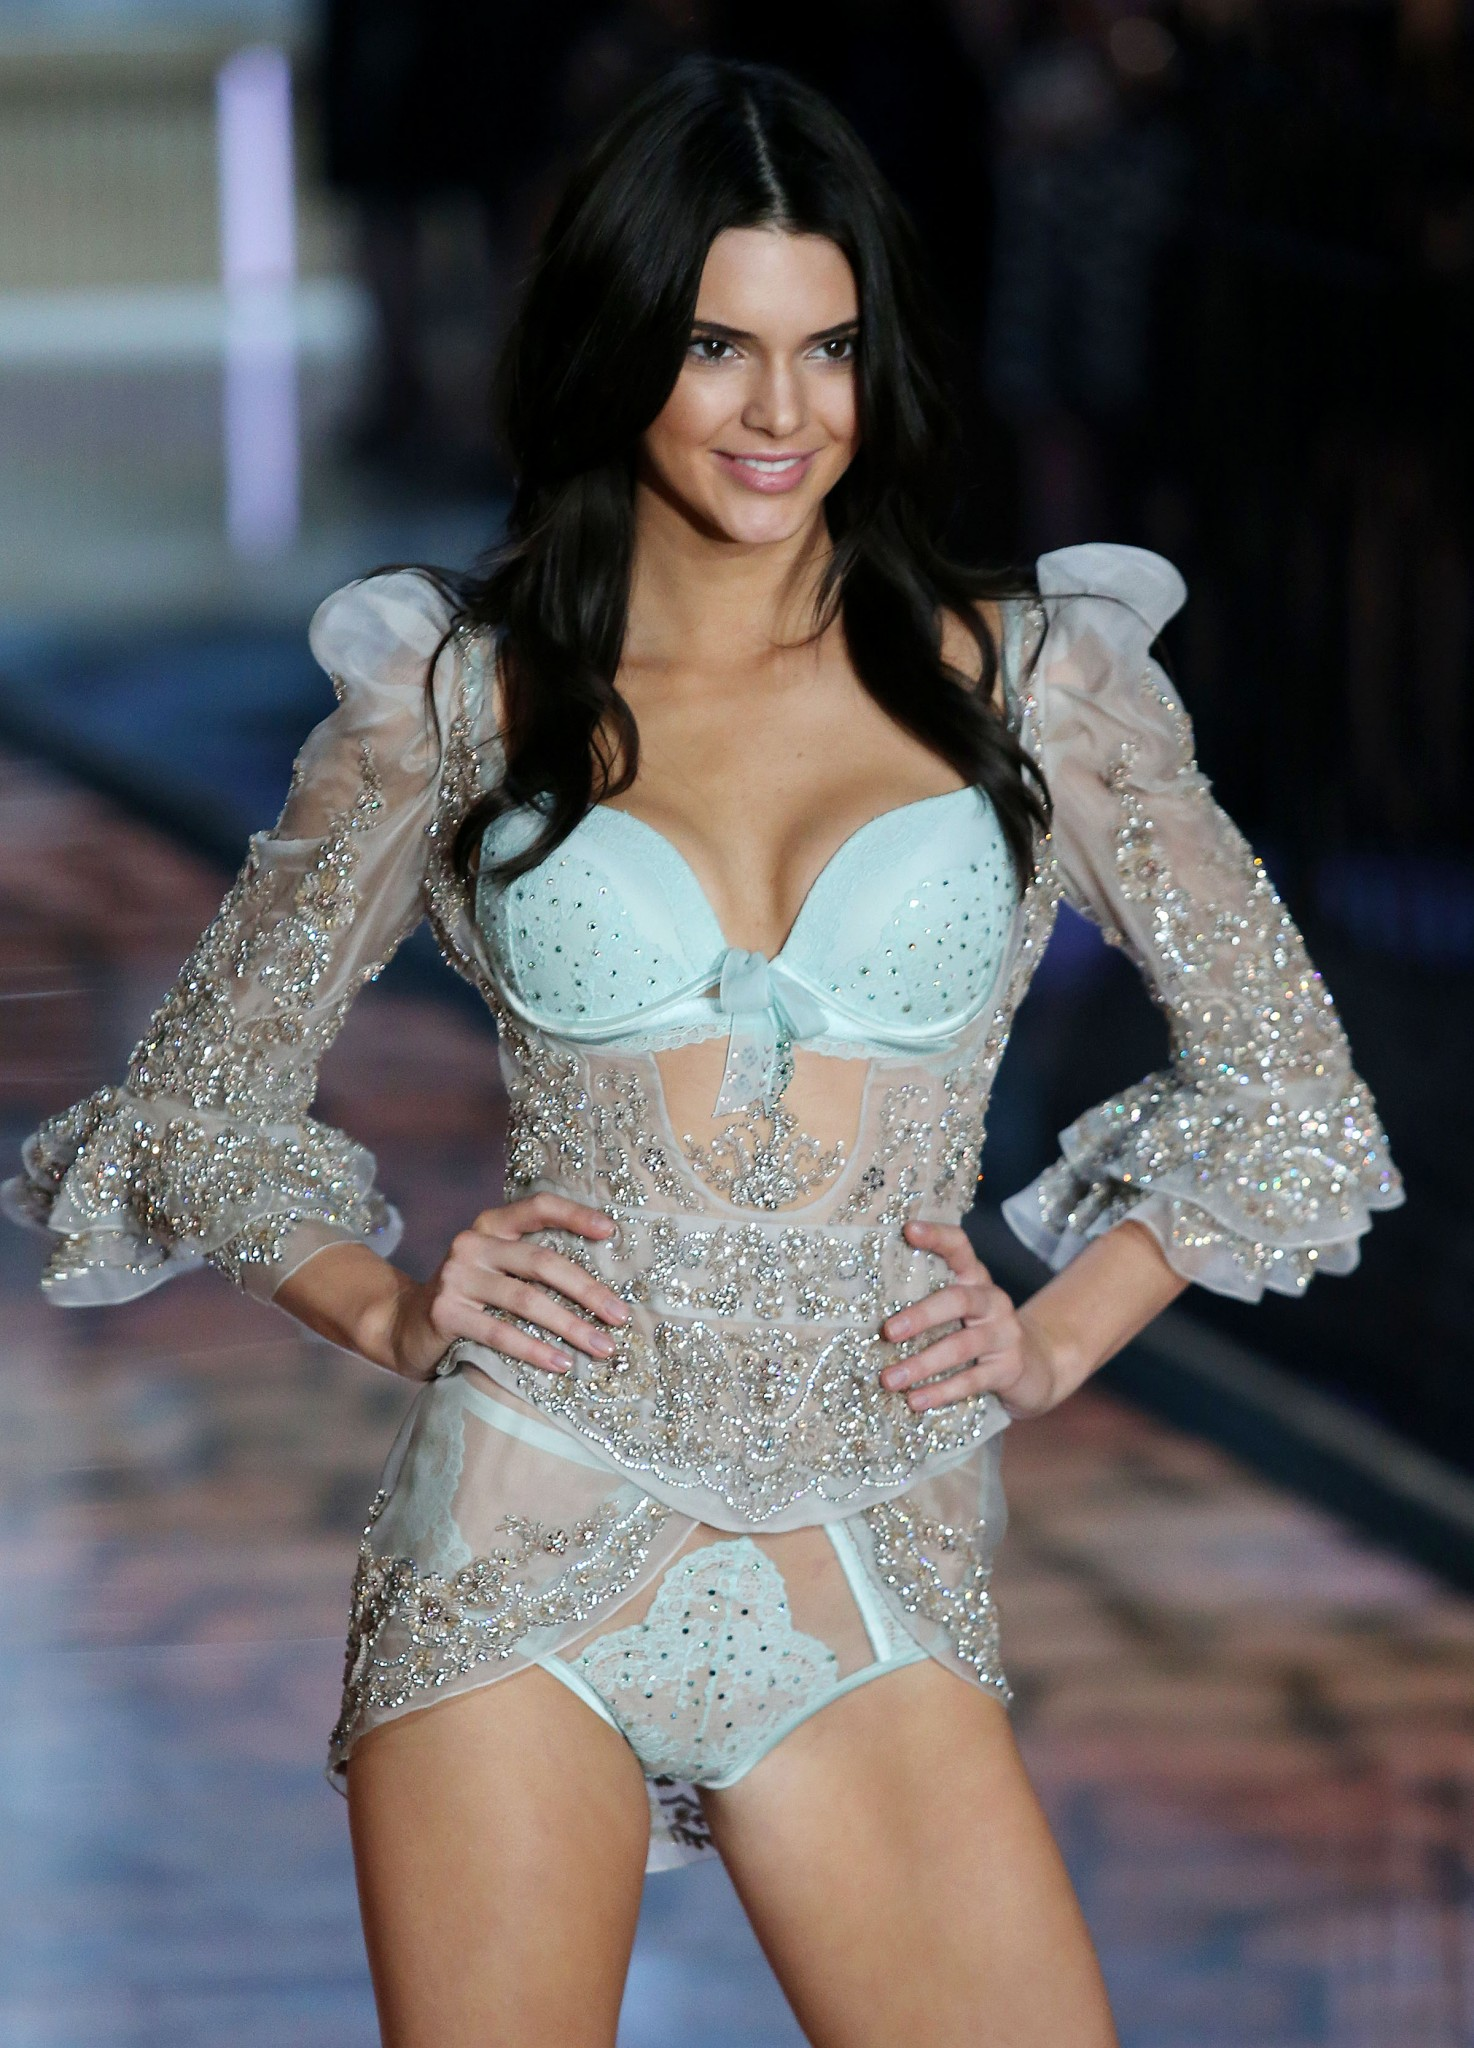 kendall-jenner-cameltoe-victorias-secret-fashion-show-04